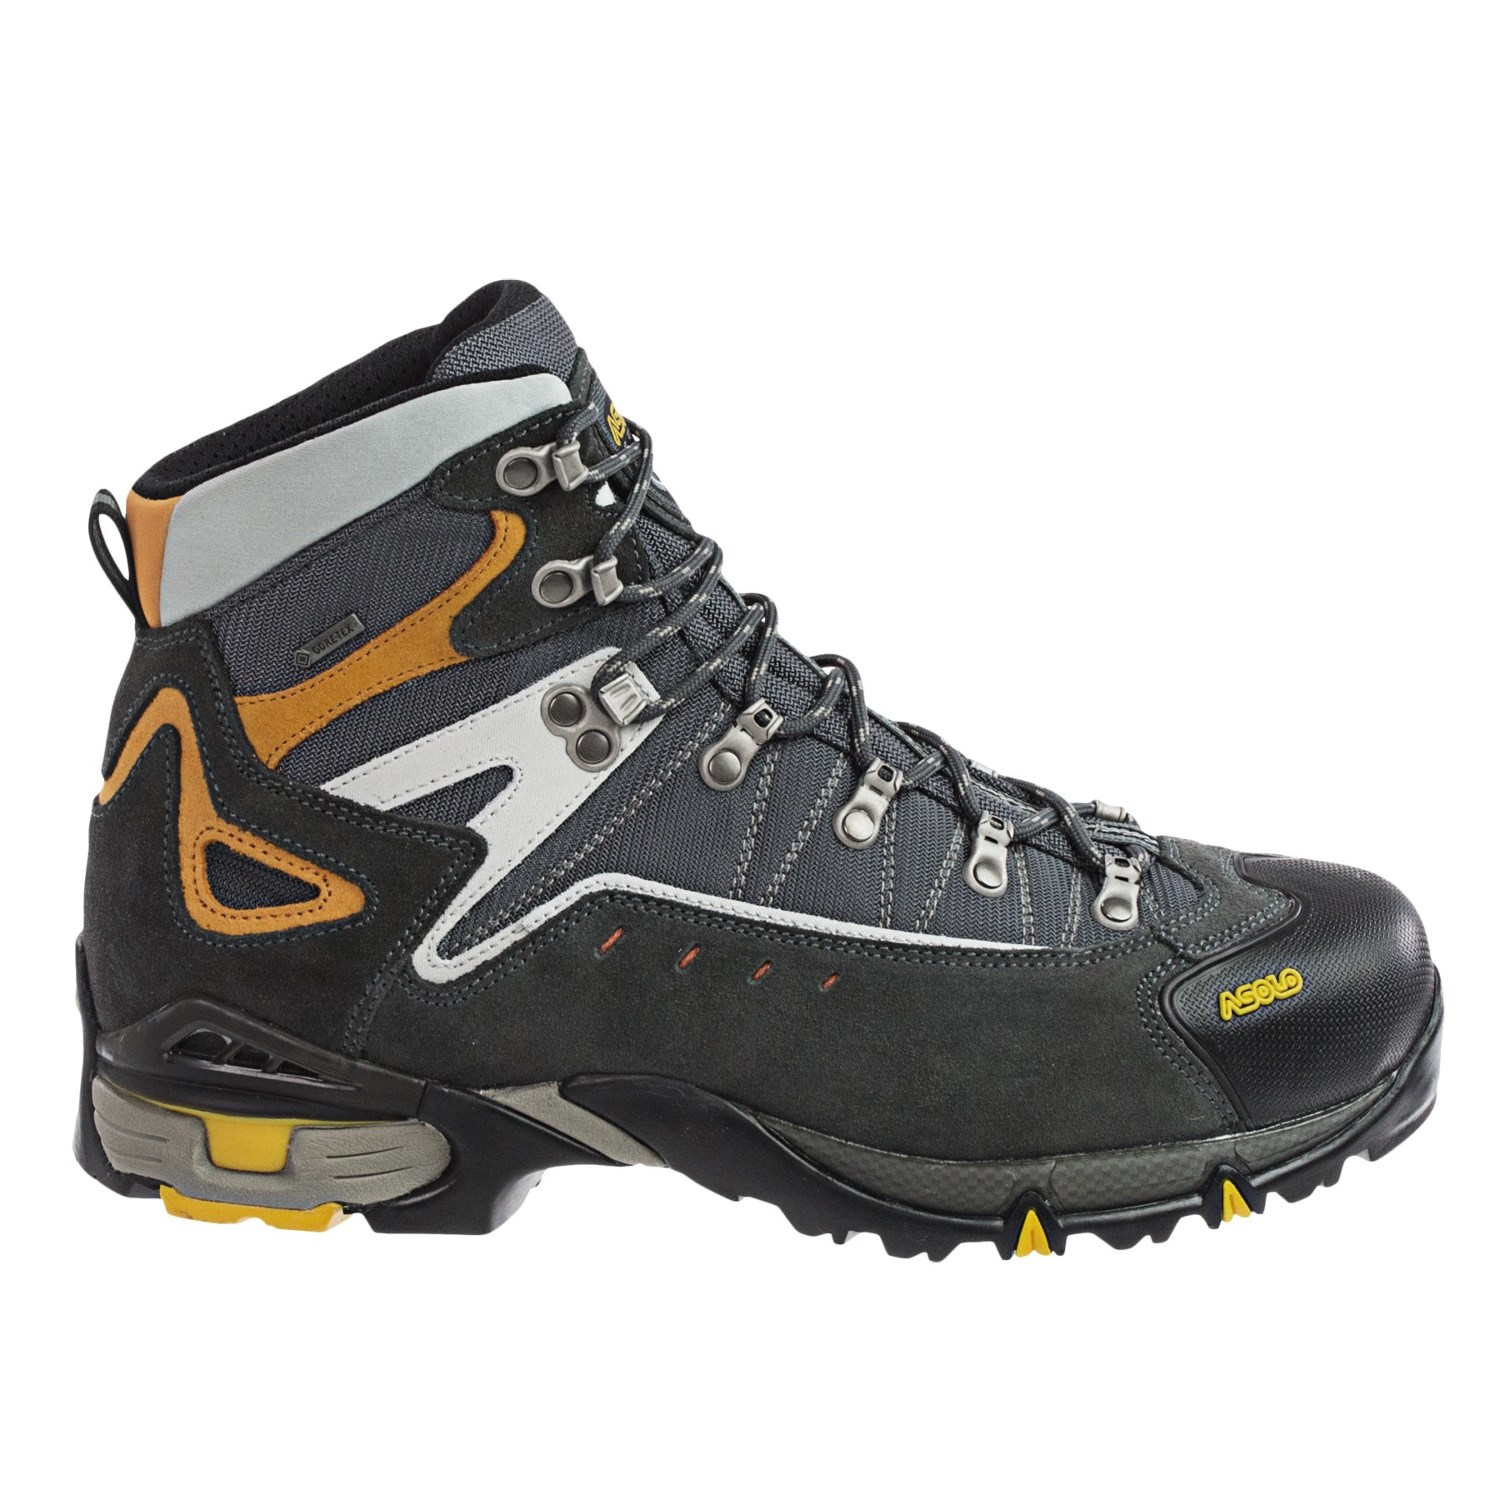 26e4548a101 Asolo Flame Gore-Tex® Hiking Boots - Waterproof (For Men)